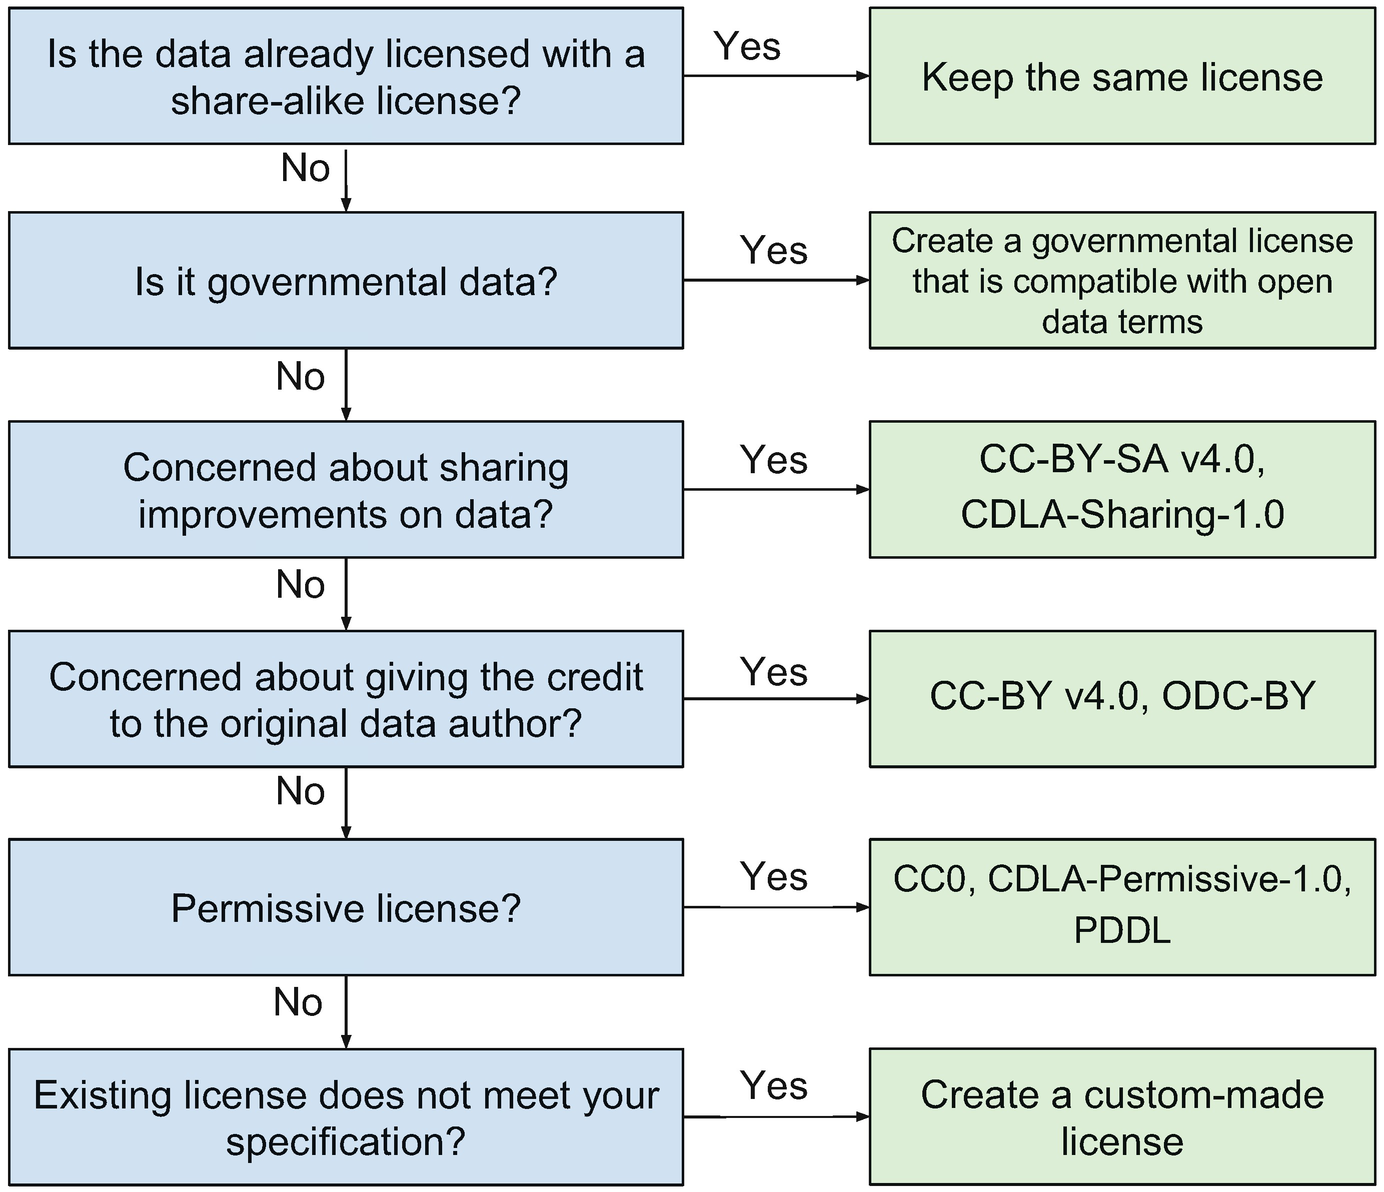 Open Source and Open Data Licenses in the Smart